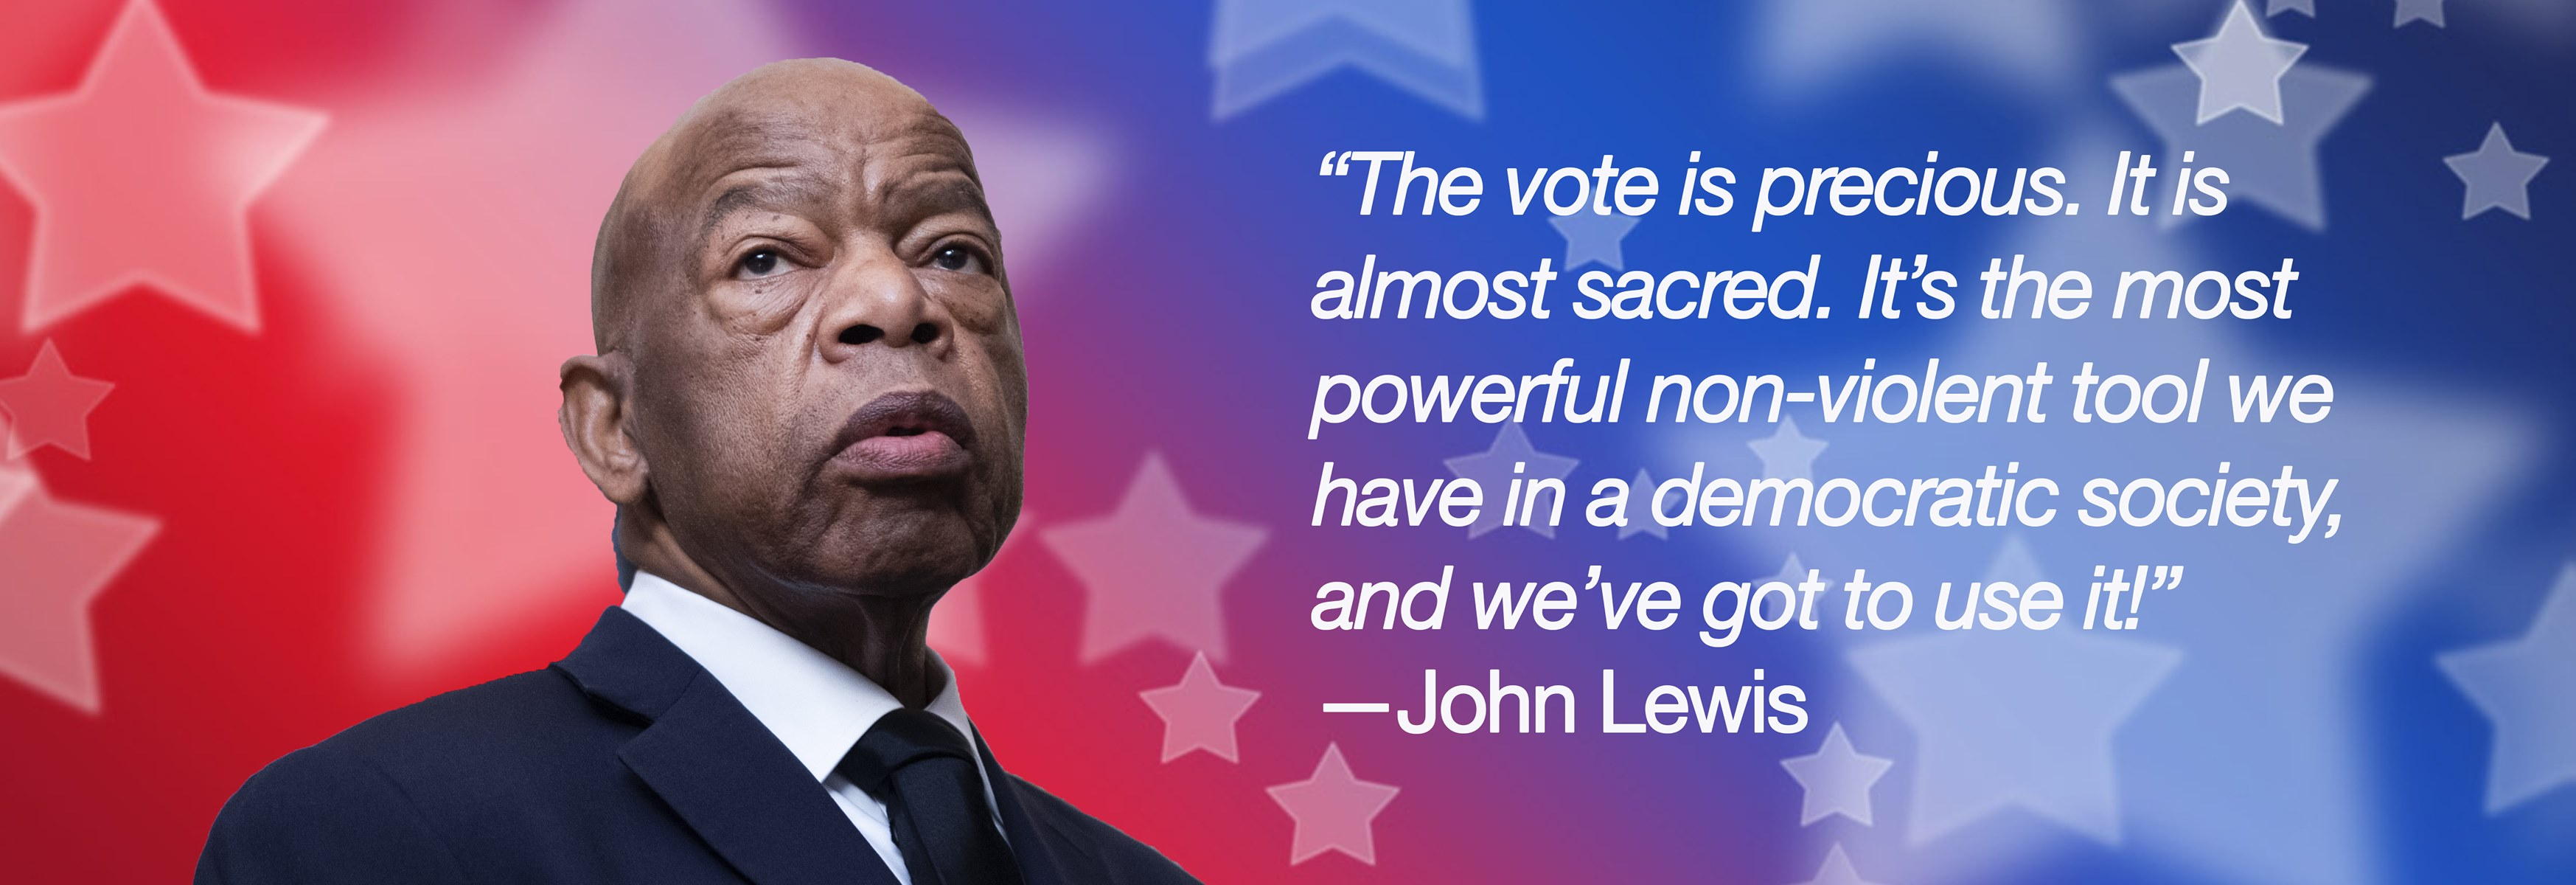 "Graphic with a headshot of John Lewis with quoted text to the right, """"The vote is precious. It is almost sacred. It's the most powerful non-violent tool we have in a democratic society, and we've got to use it!"" - John Lewis."""